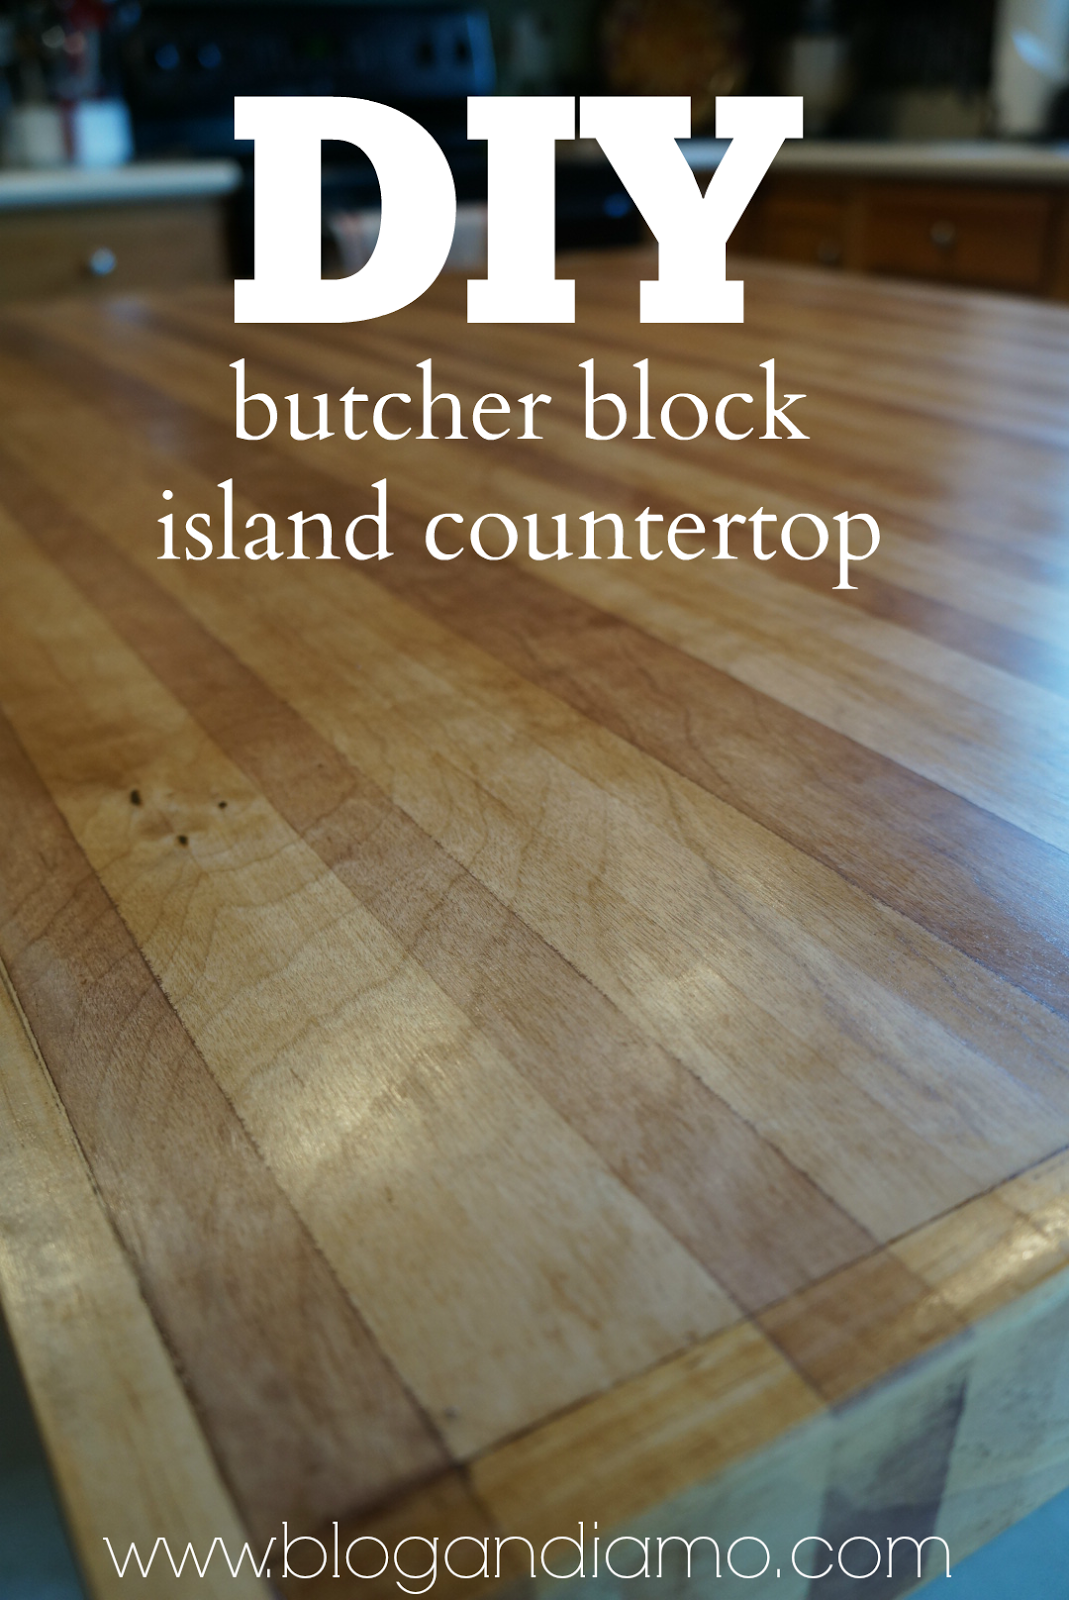 Andiamo Diy Butcher Block Island Countertop Diy Butcher Block Countertops Butcher Block Countertops Island Diy Butcher Block Counter